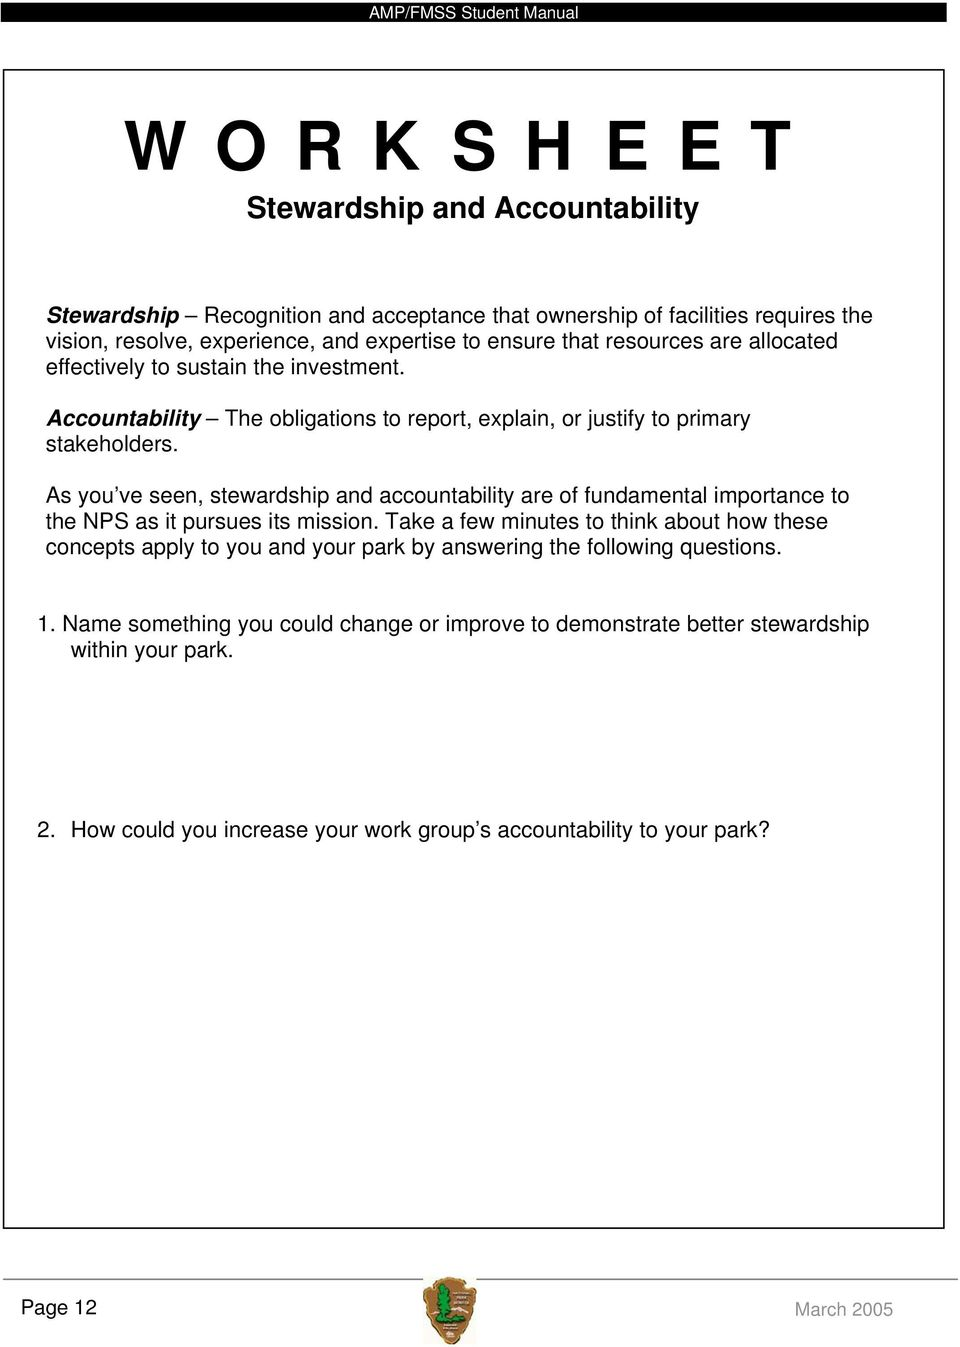 As you ve seen, stewardship and accountability are of fundamental importance to the NPS as it pursues its mission.